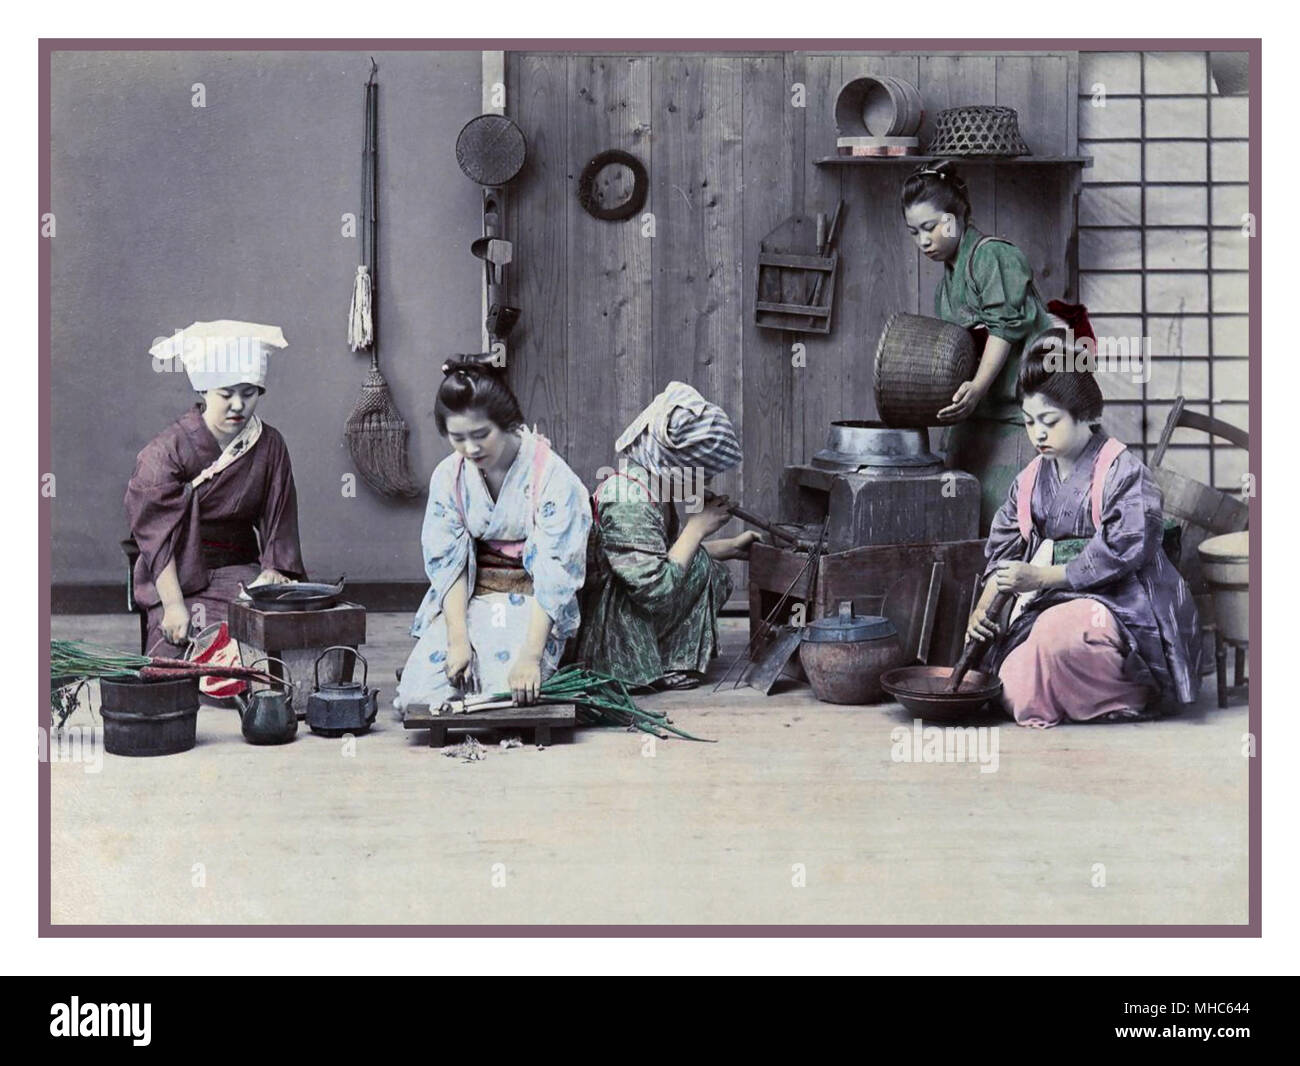 JAPAN Meiji period 1880-1890 female workers in a kitchen prepare for dinner. Colour lithography Photochrom image technique Circa 1880-1890. Meiji period (明治時代, Meiji-jidai), also known as the Meiji era, is a Japanese era which extended from October 23, 1868, to July 30, 1912. This period represents the first half of the Empire of Japan during which Japanese society moved from being an isolated feudal society to its modern form. - Stock Image